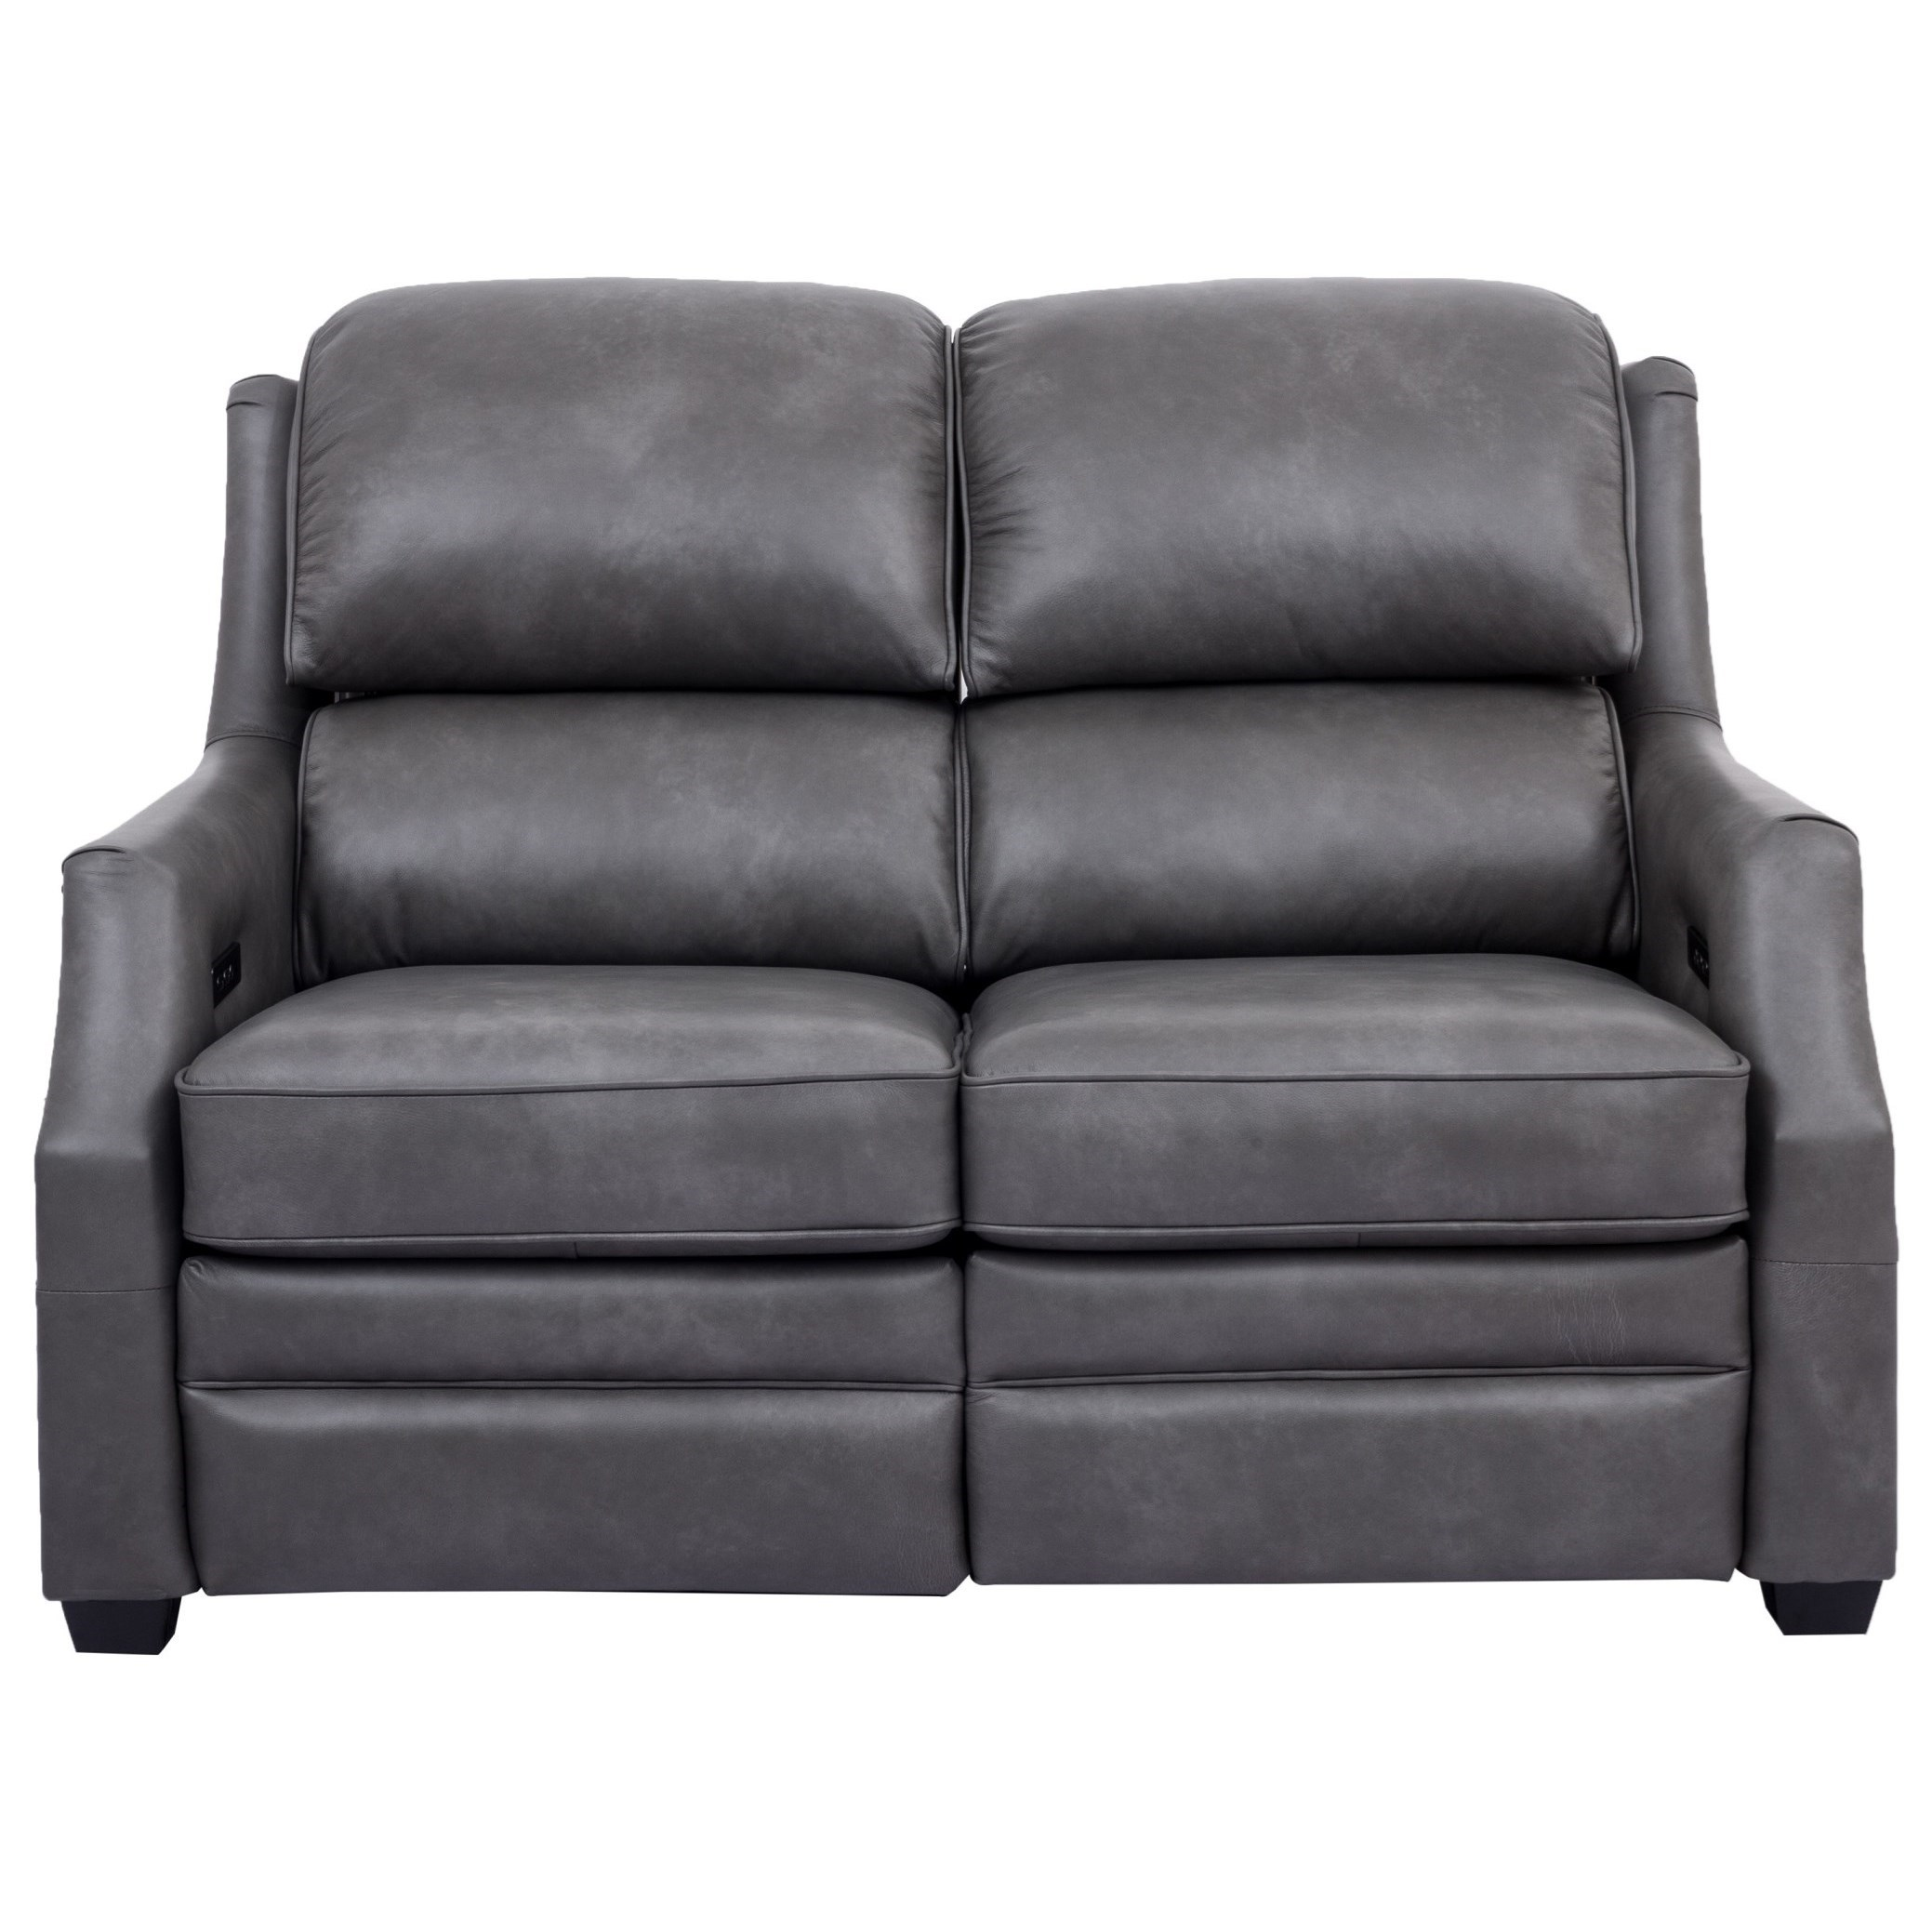 70010 Power Headrest Reclining Loveseat by Cheers at Lagniappe Home Store